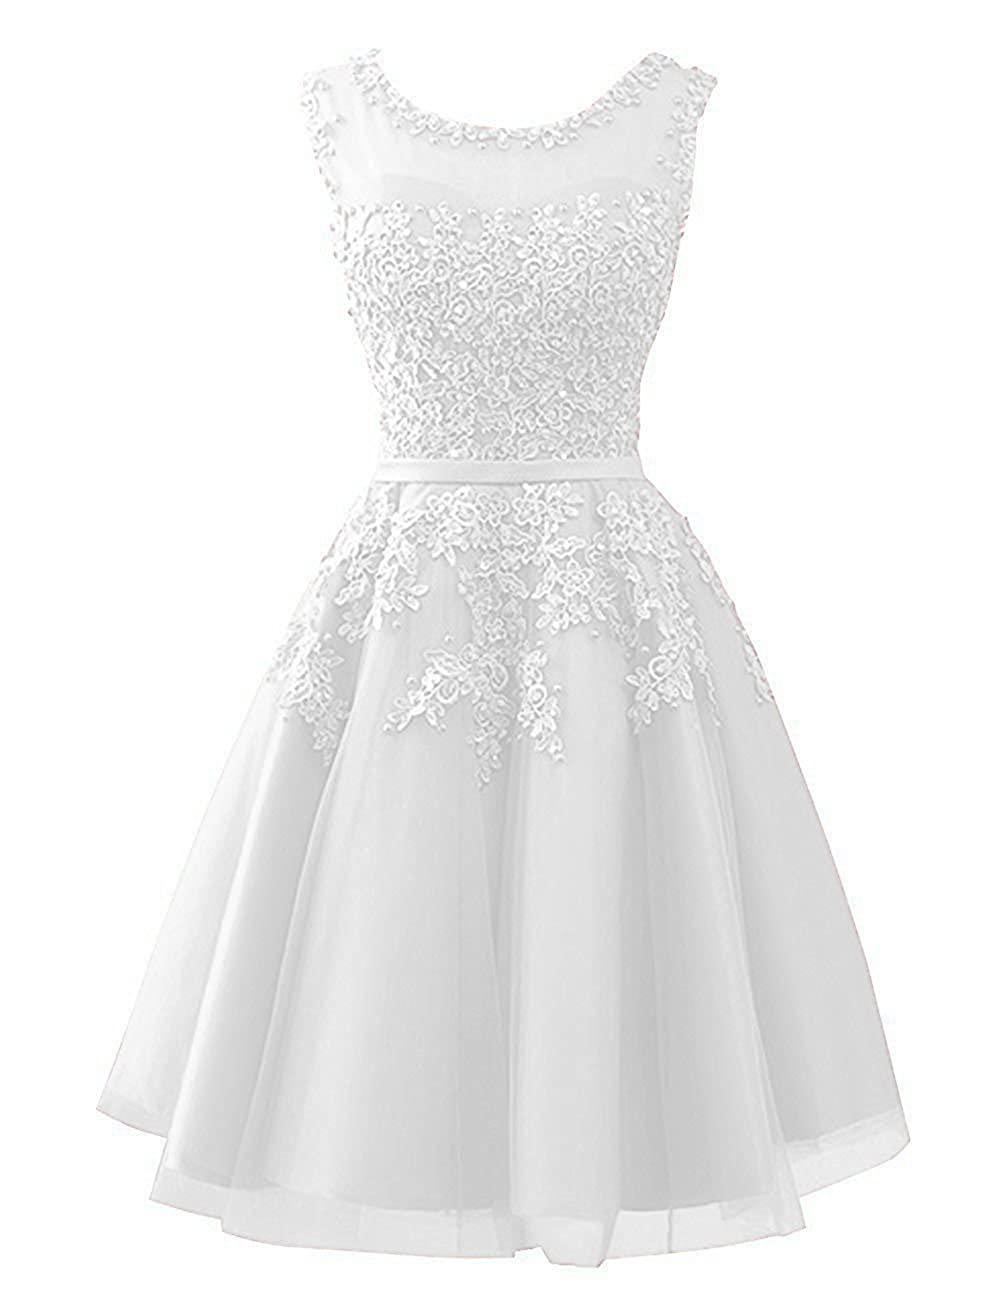 Ivory Cdress Tulle Short Junior Homecoming Dresses Prom Evening Dress Party Formal Gowns Lace Appliques